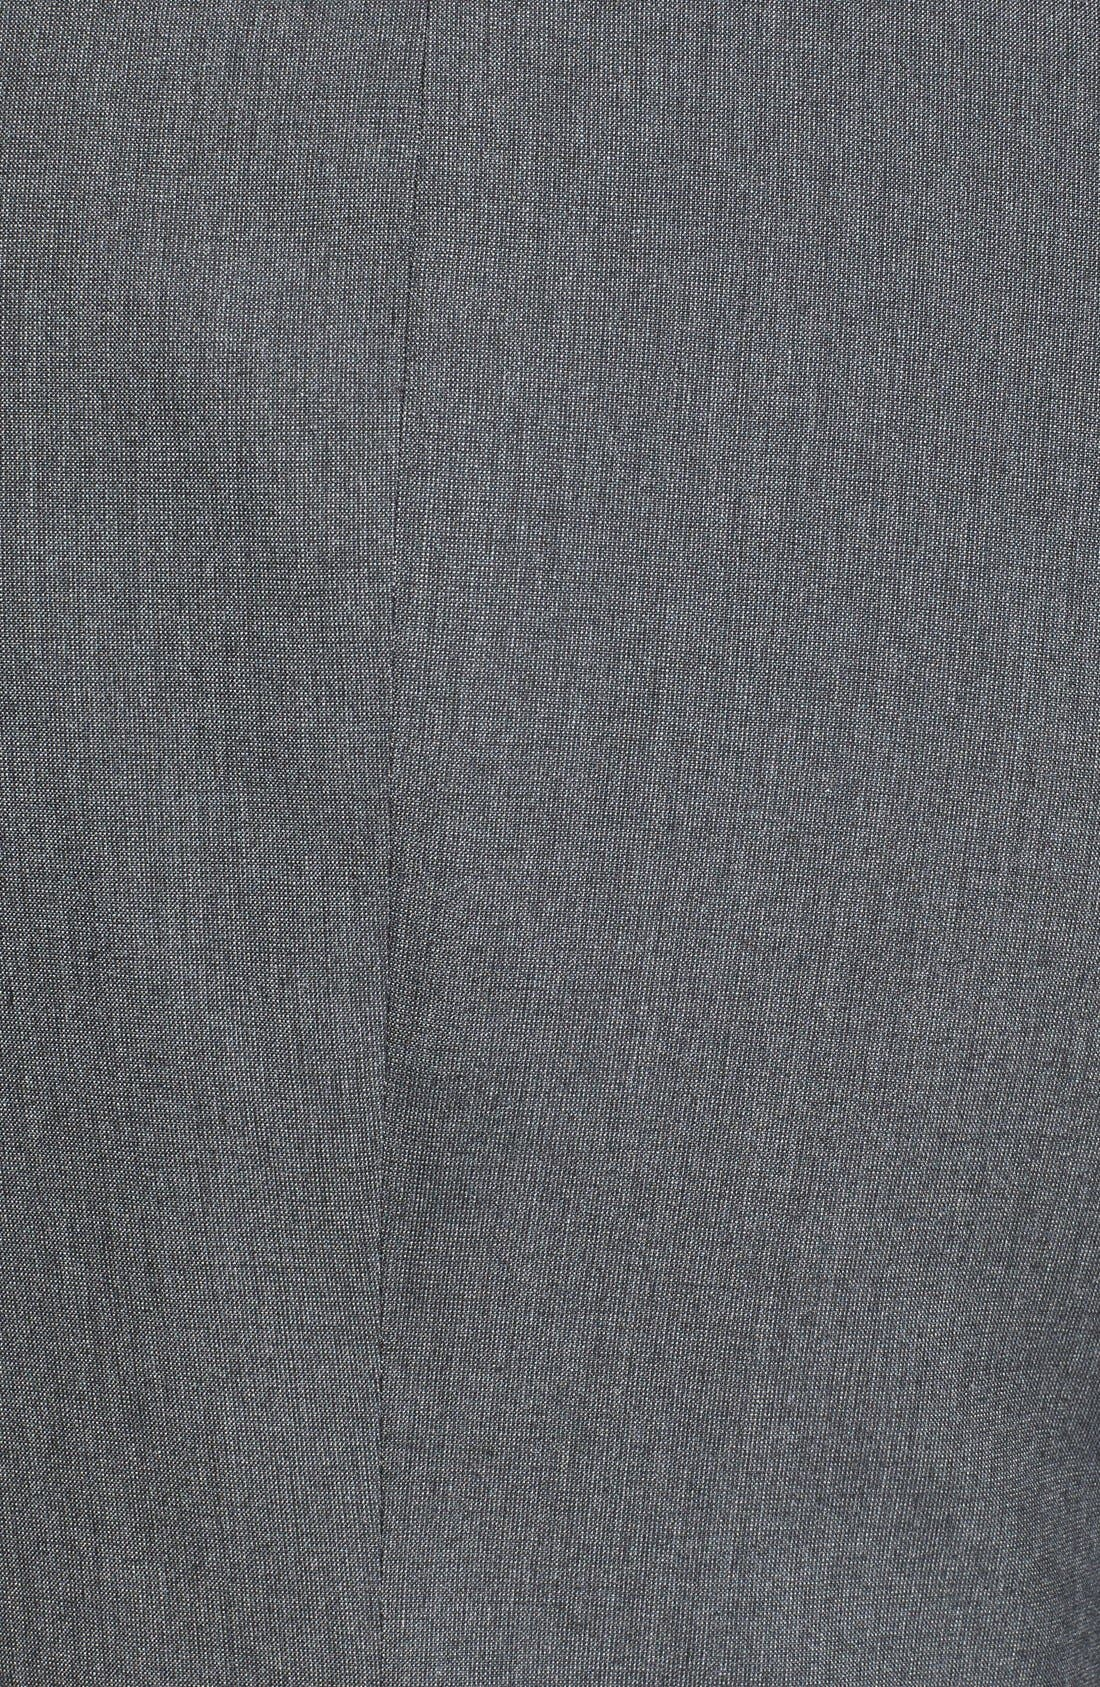 Alternate Image 3  - Topman Skinny Fit Satin Trim Grey Suit Jacket